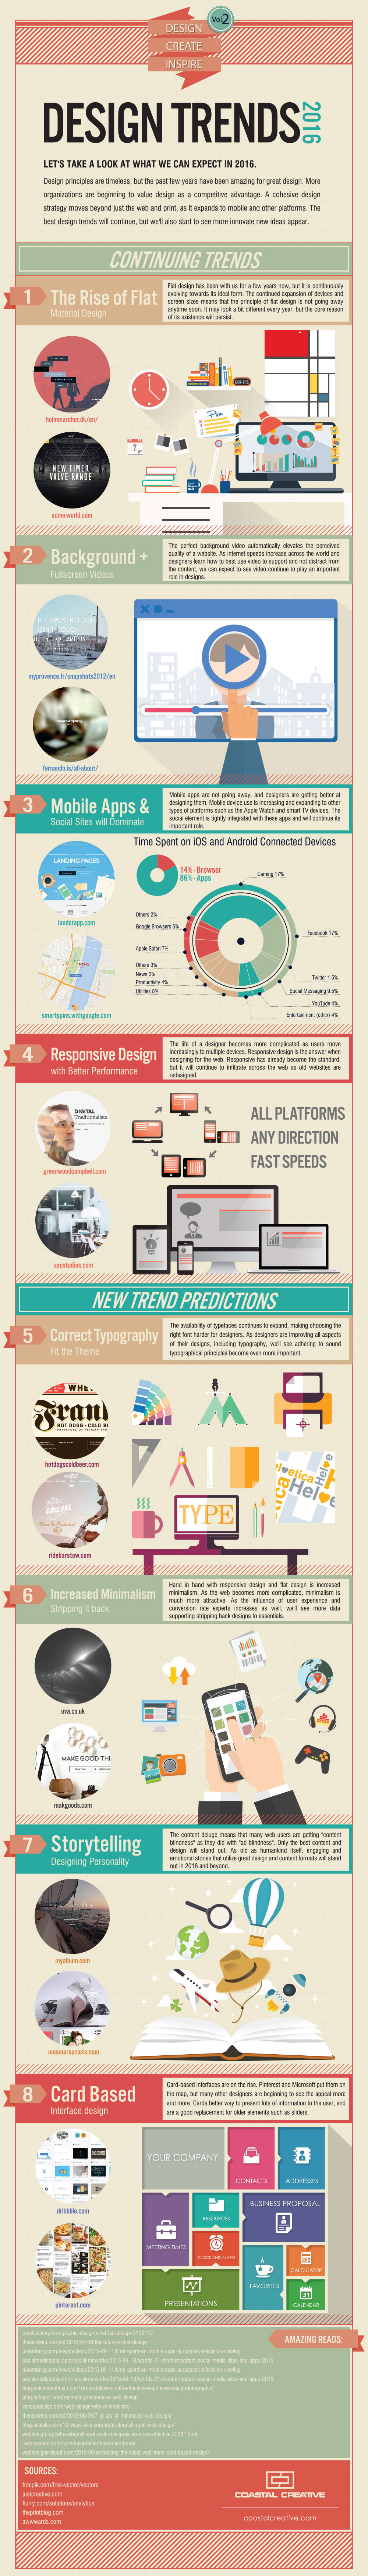 20151215020339-design-trends-infographic